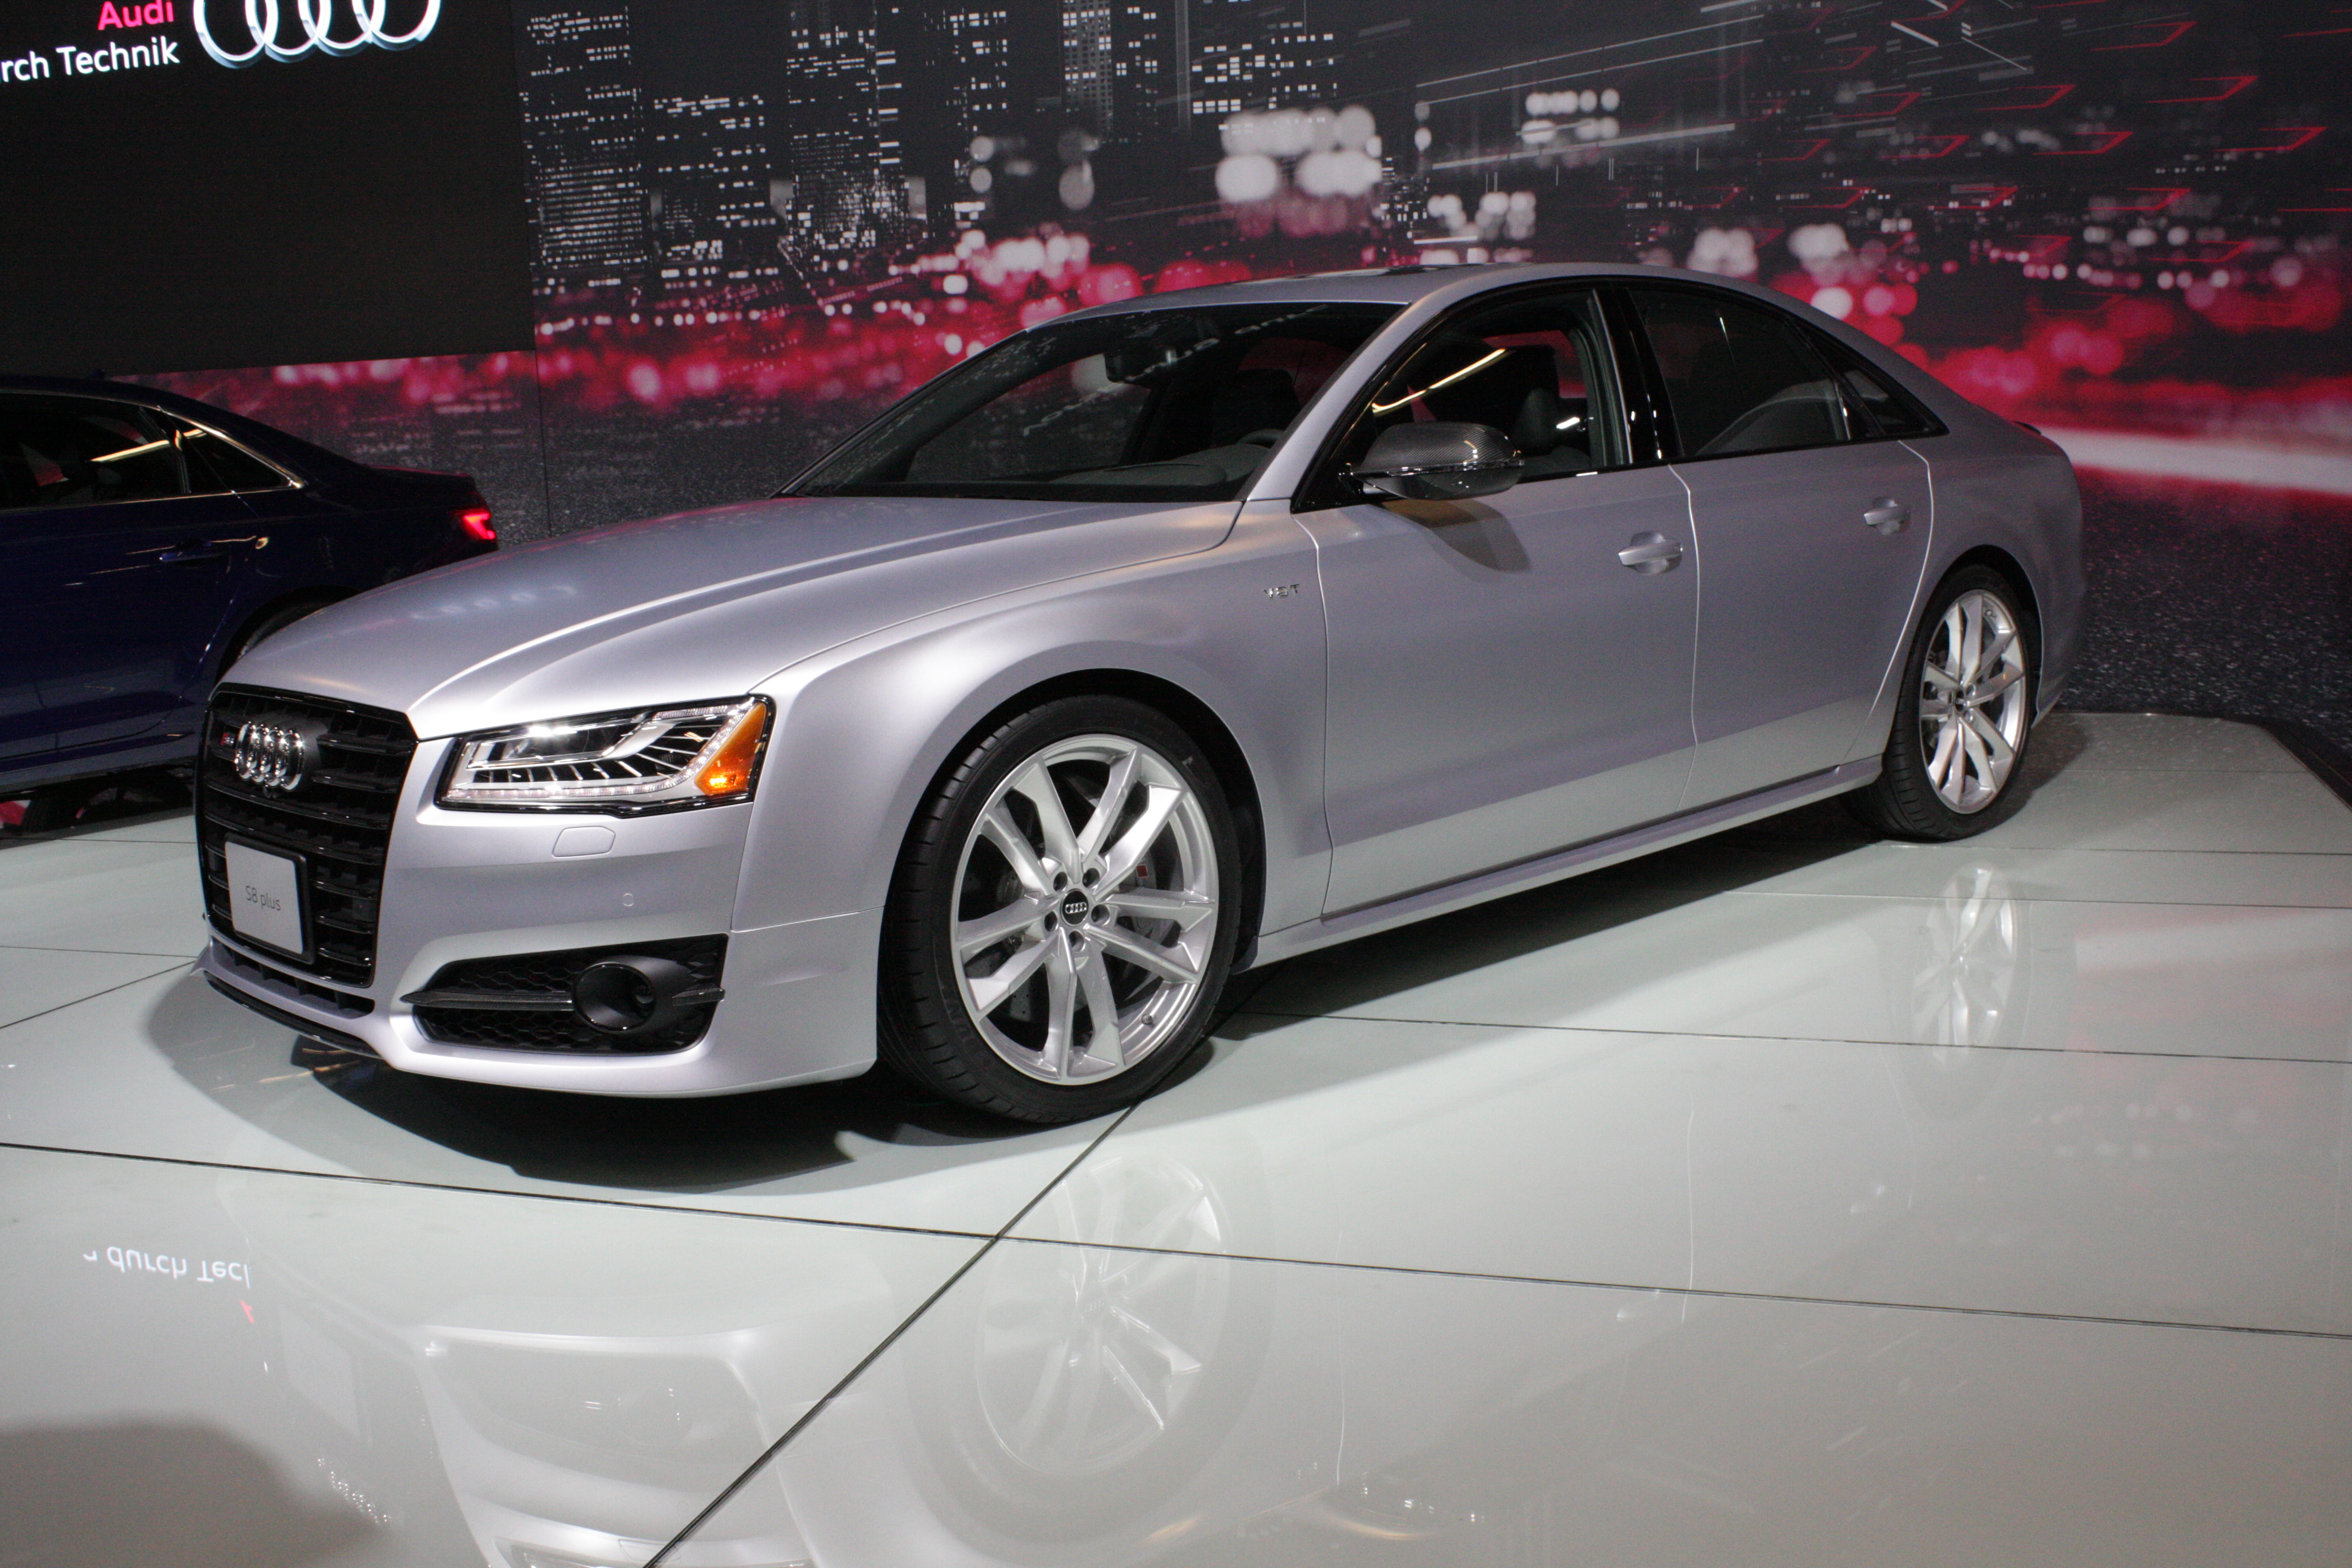 The Audi S8 Plus is an updated version of its flagship performance sedan that boasts 605 horsepower from its twin-turbocharged V8 engine.